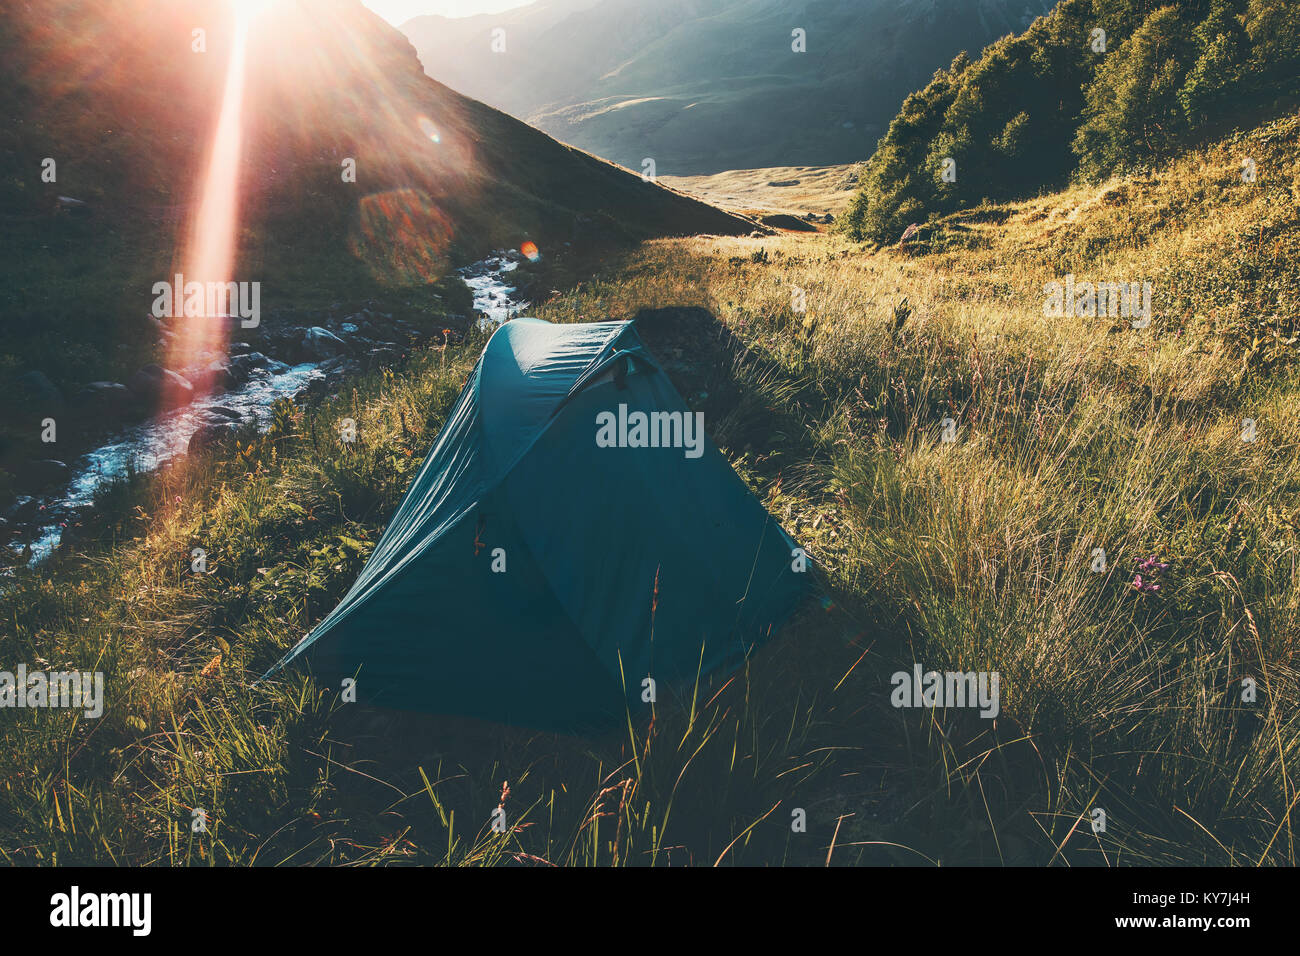 Tent camping at Mountains Landscape Travel Lifestyle concept Summer adventure vacations outdoor - Stock Image